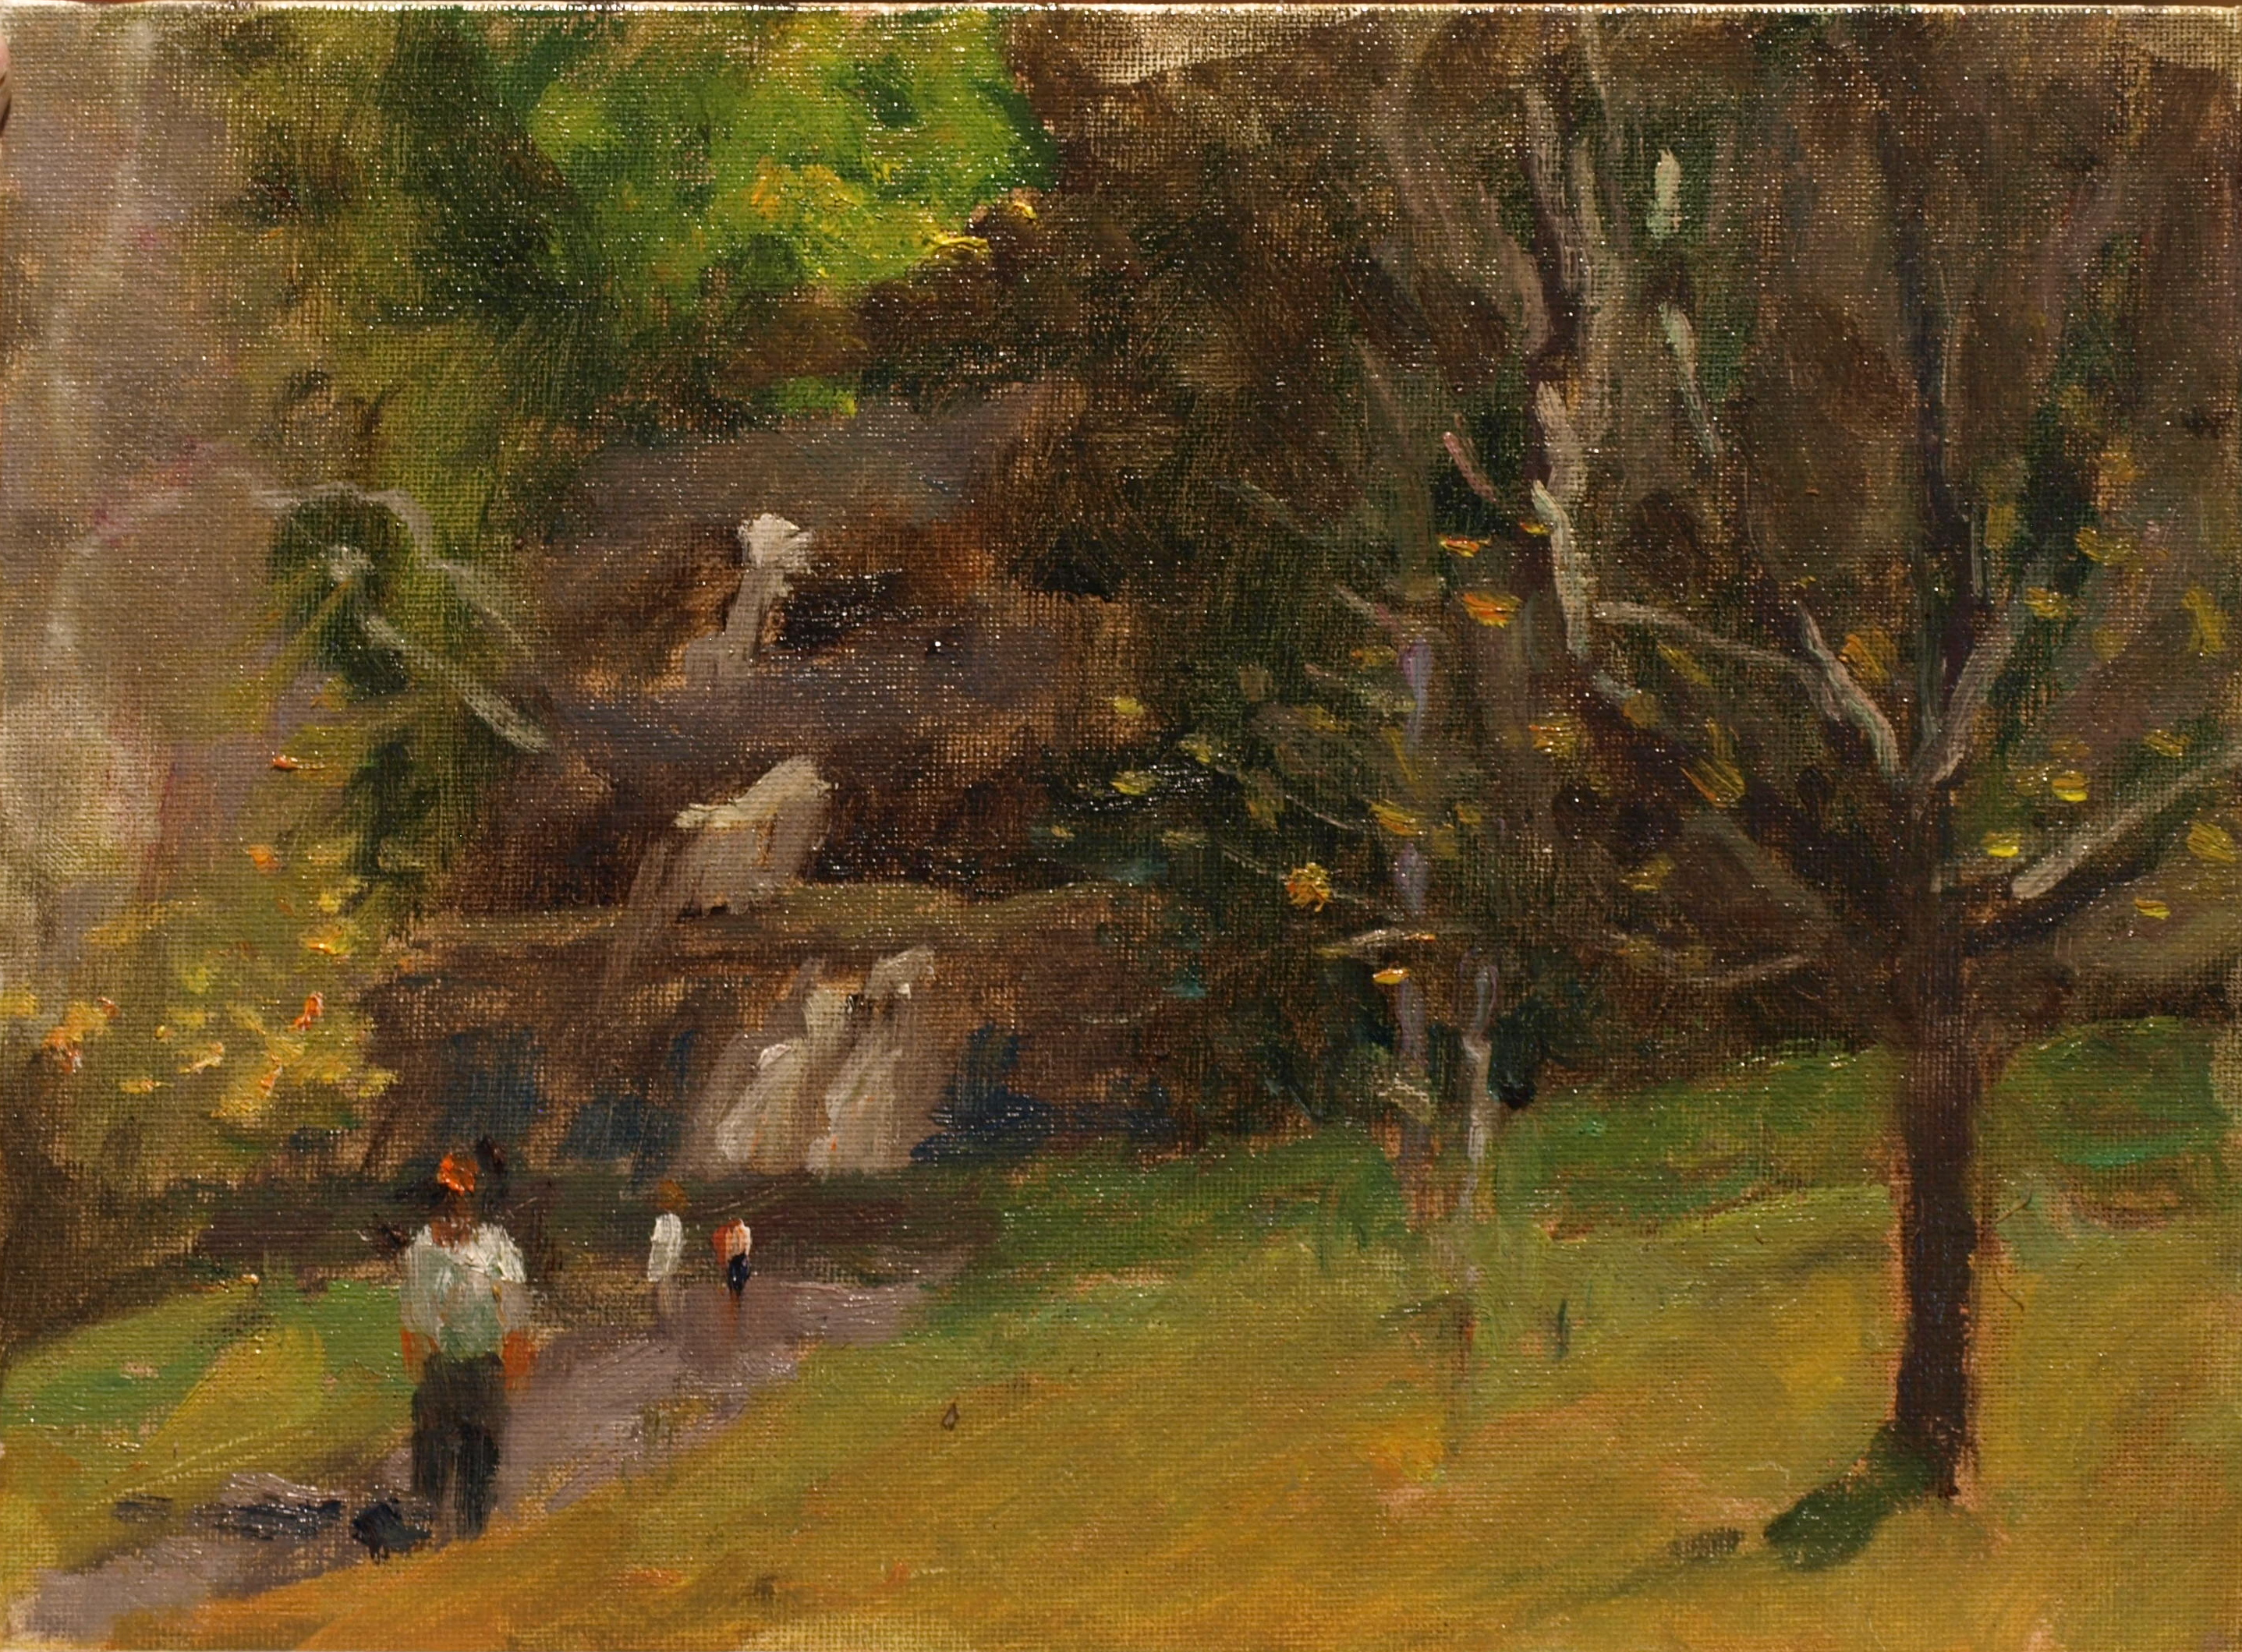 Path to Kent Falls, Oil on Canvas on Panel, 9 x 12 Inches, by Richard Stalter, $220